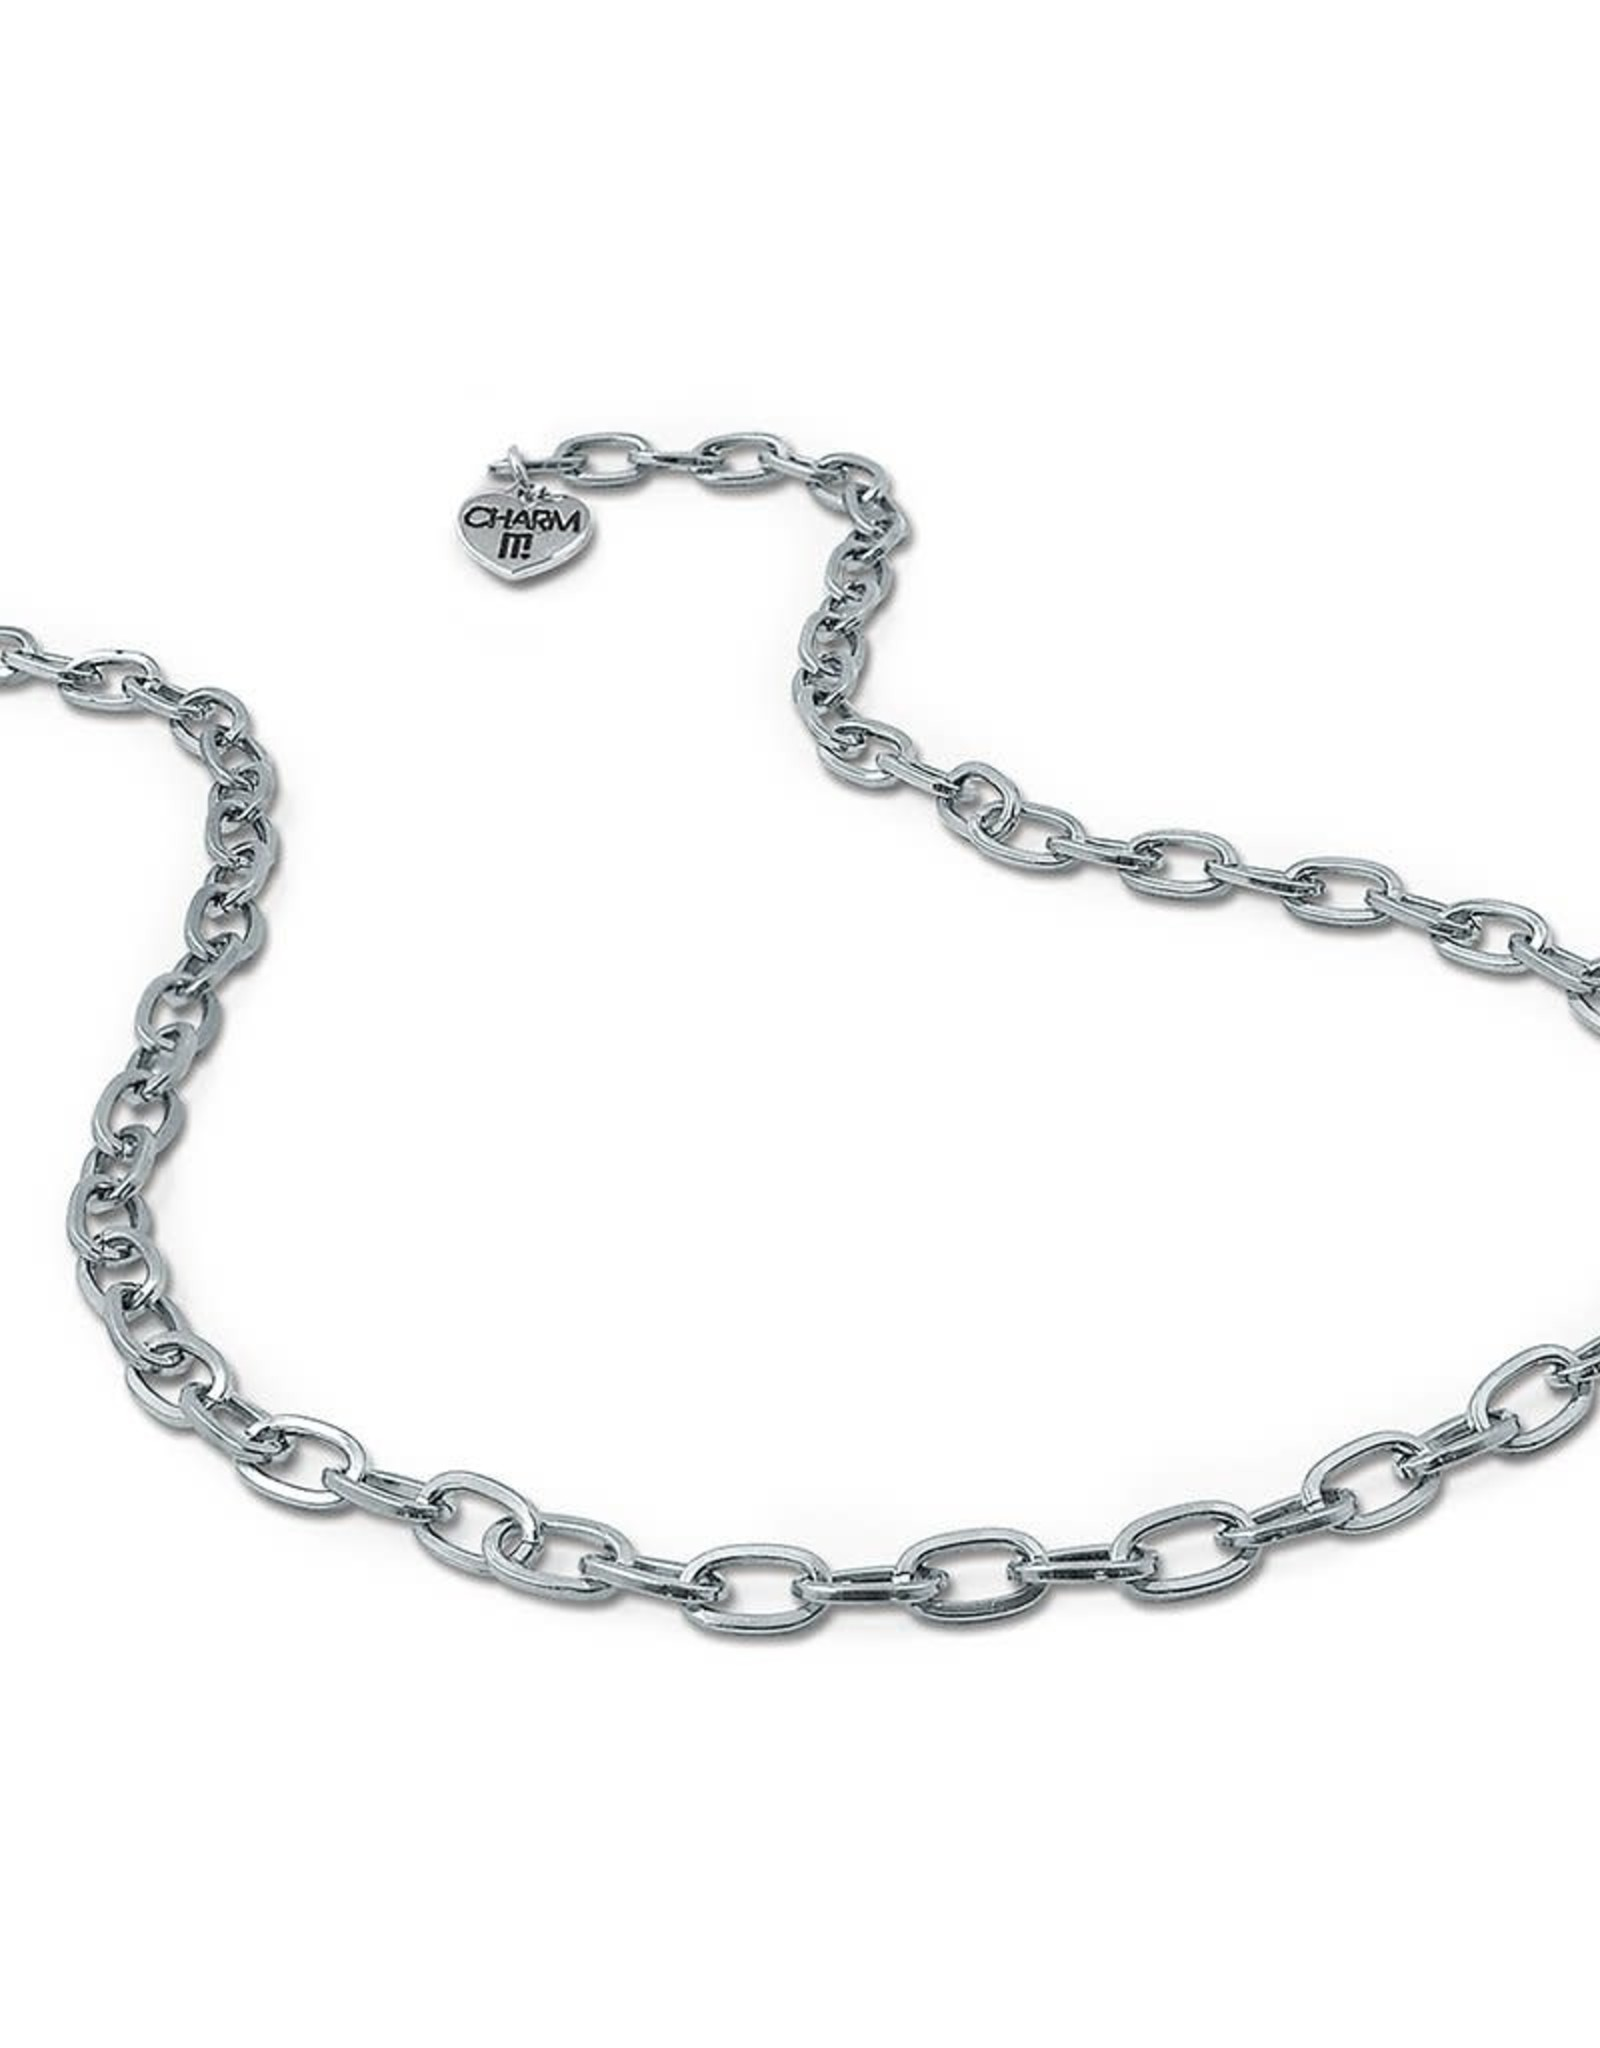 Charm It Charm Necklace Silver Chain